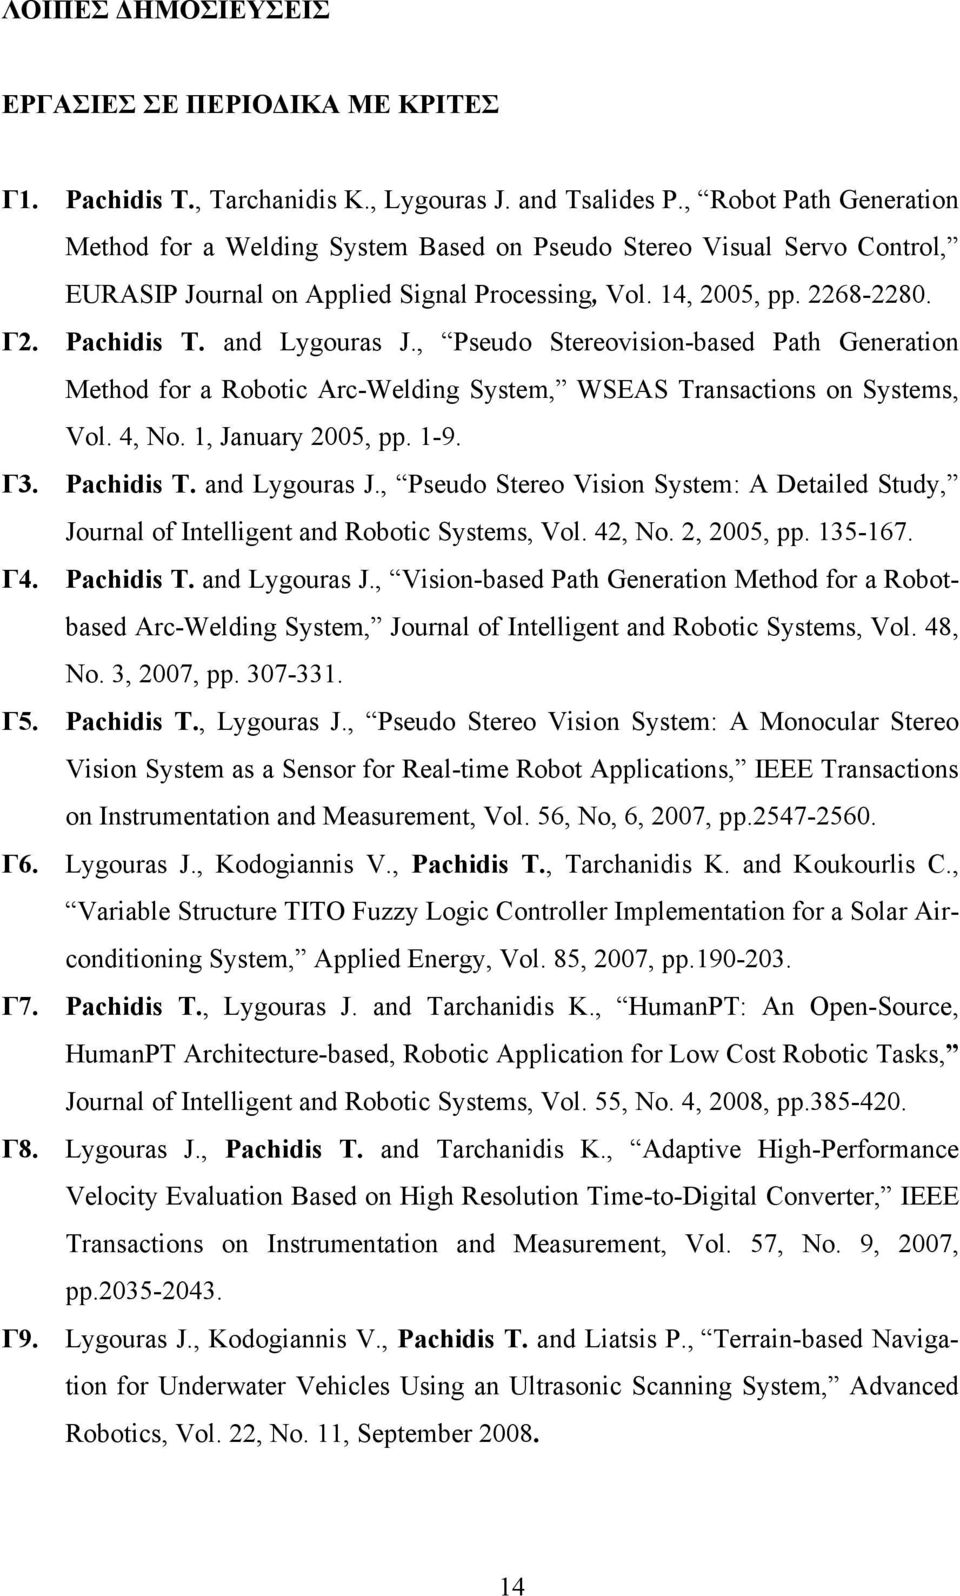 and Lygouras J., Pseudo Stereovision-based Path Generation Method for a Robotic Arc-Welding System, WSEAS Transactions on Systems, Vol. 4, No. 1, January 2005, pp. 1-9. Γ3. Pachidis T. and Lygouras J.